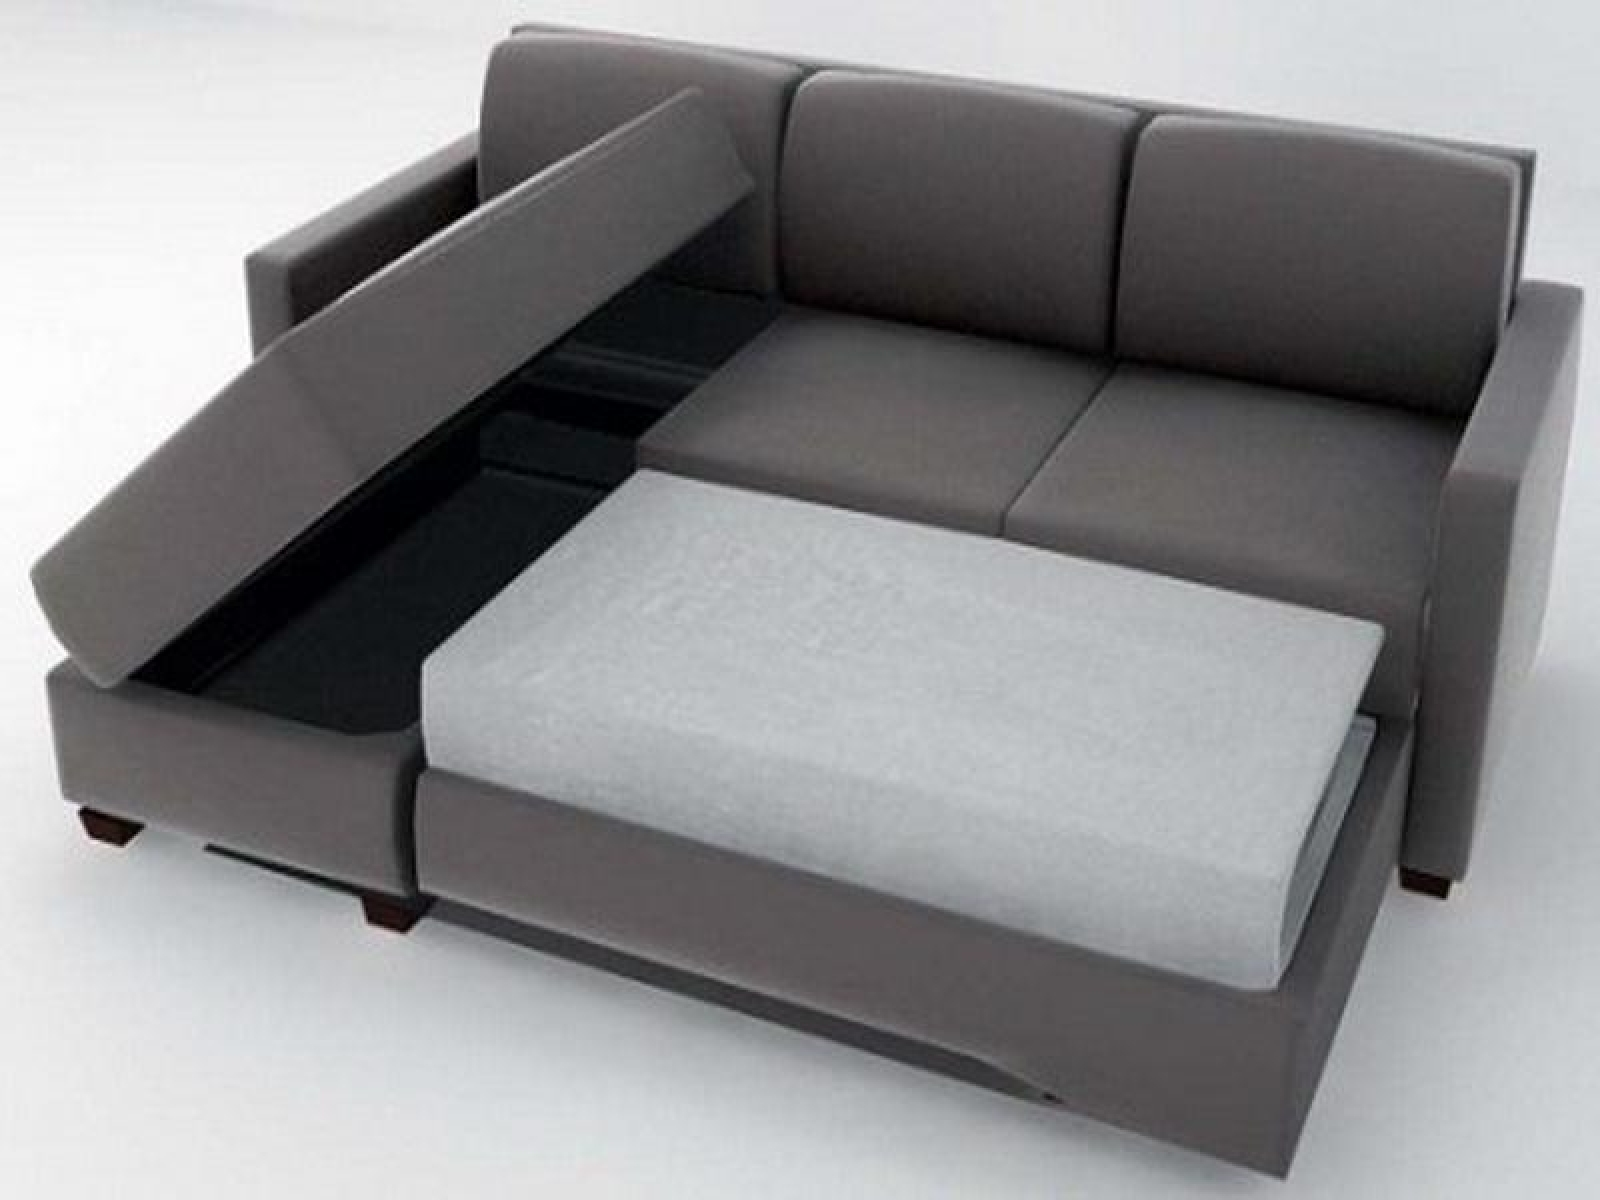 Unusual Sofas Intended For Trendy Furniture : Beautiful Unique Sofa 62 Modern Ideas With And (View 16 of 20)